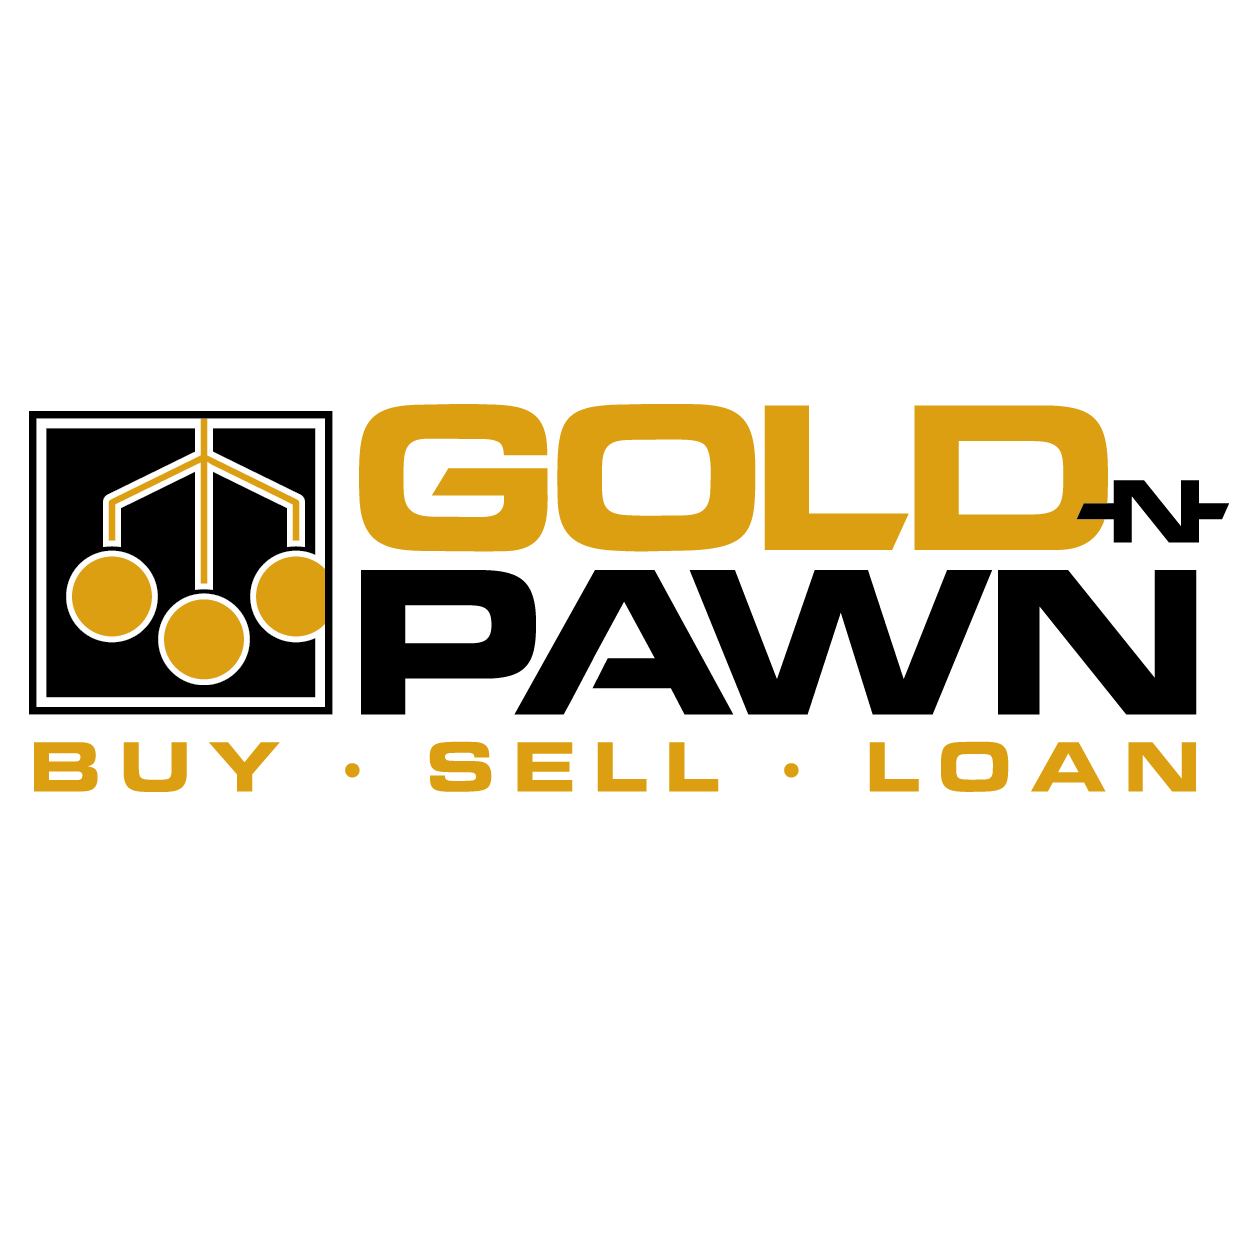 Gold N Pawn - Martinsville, IN 46151 - (765)315-0576 | ShowMeLocal.com